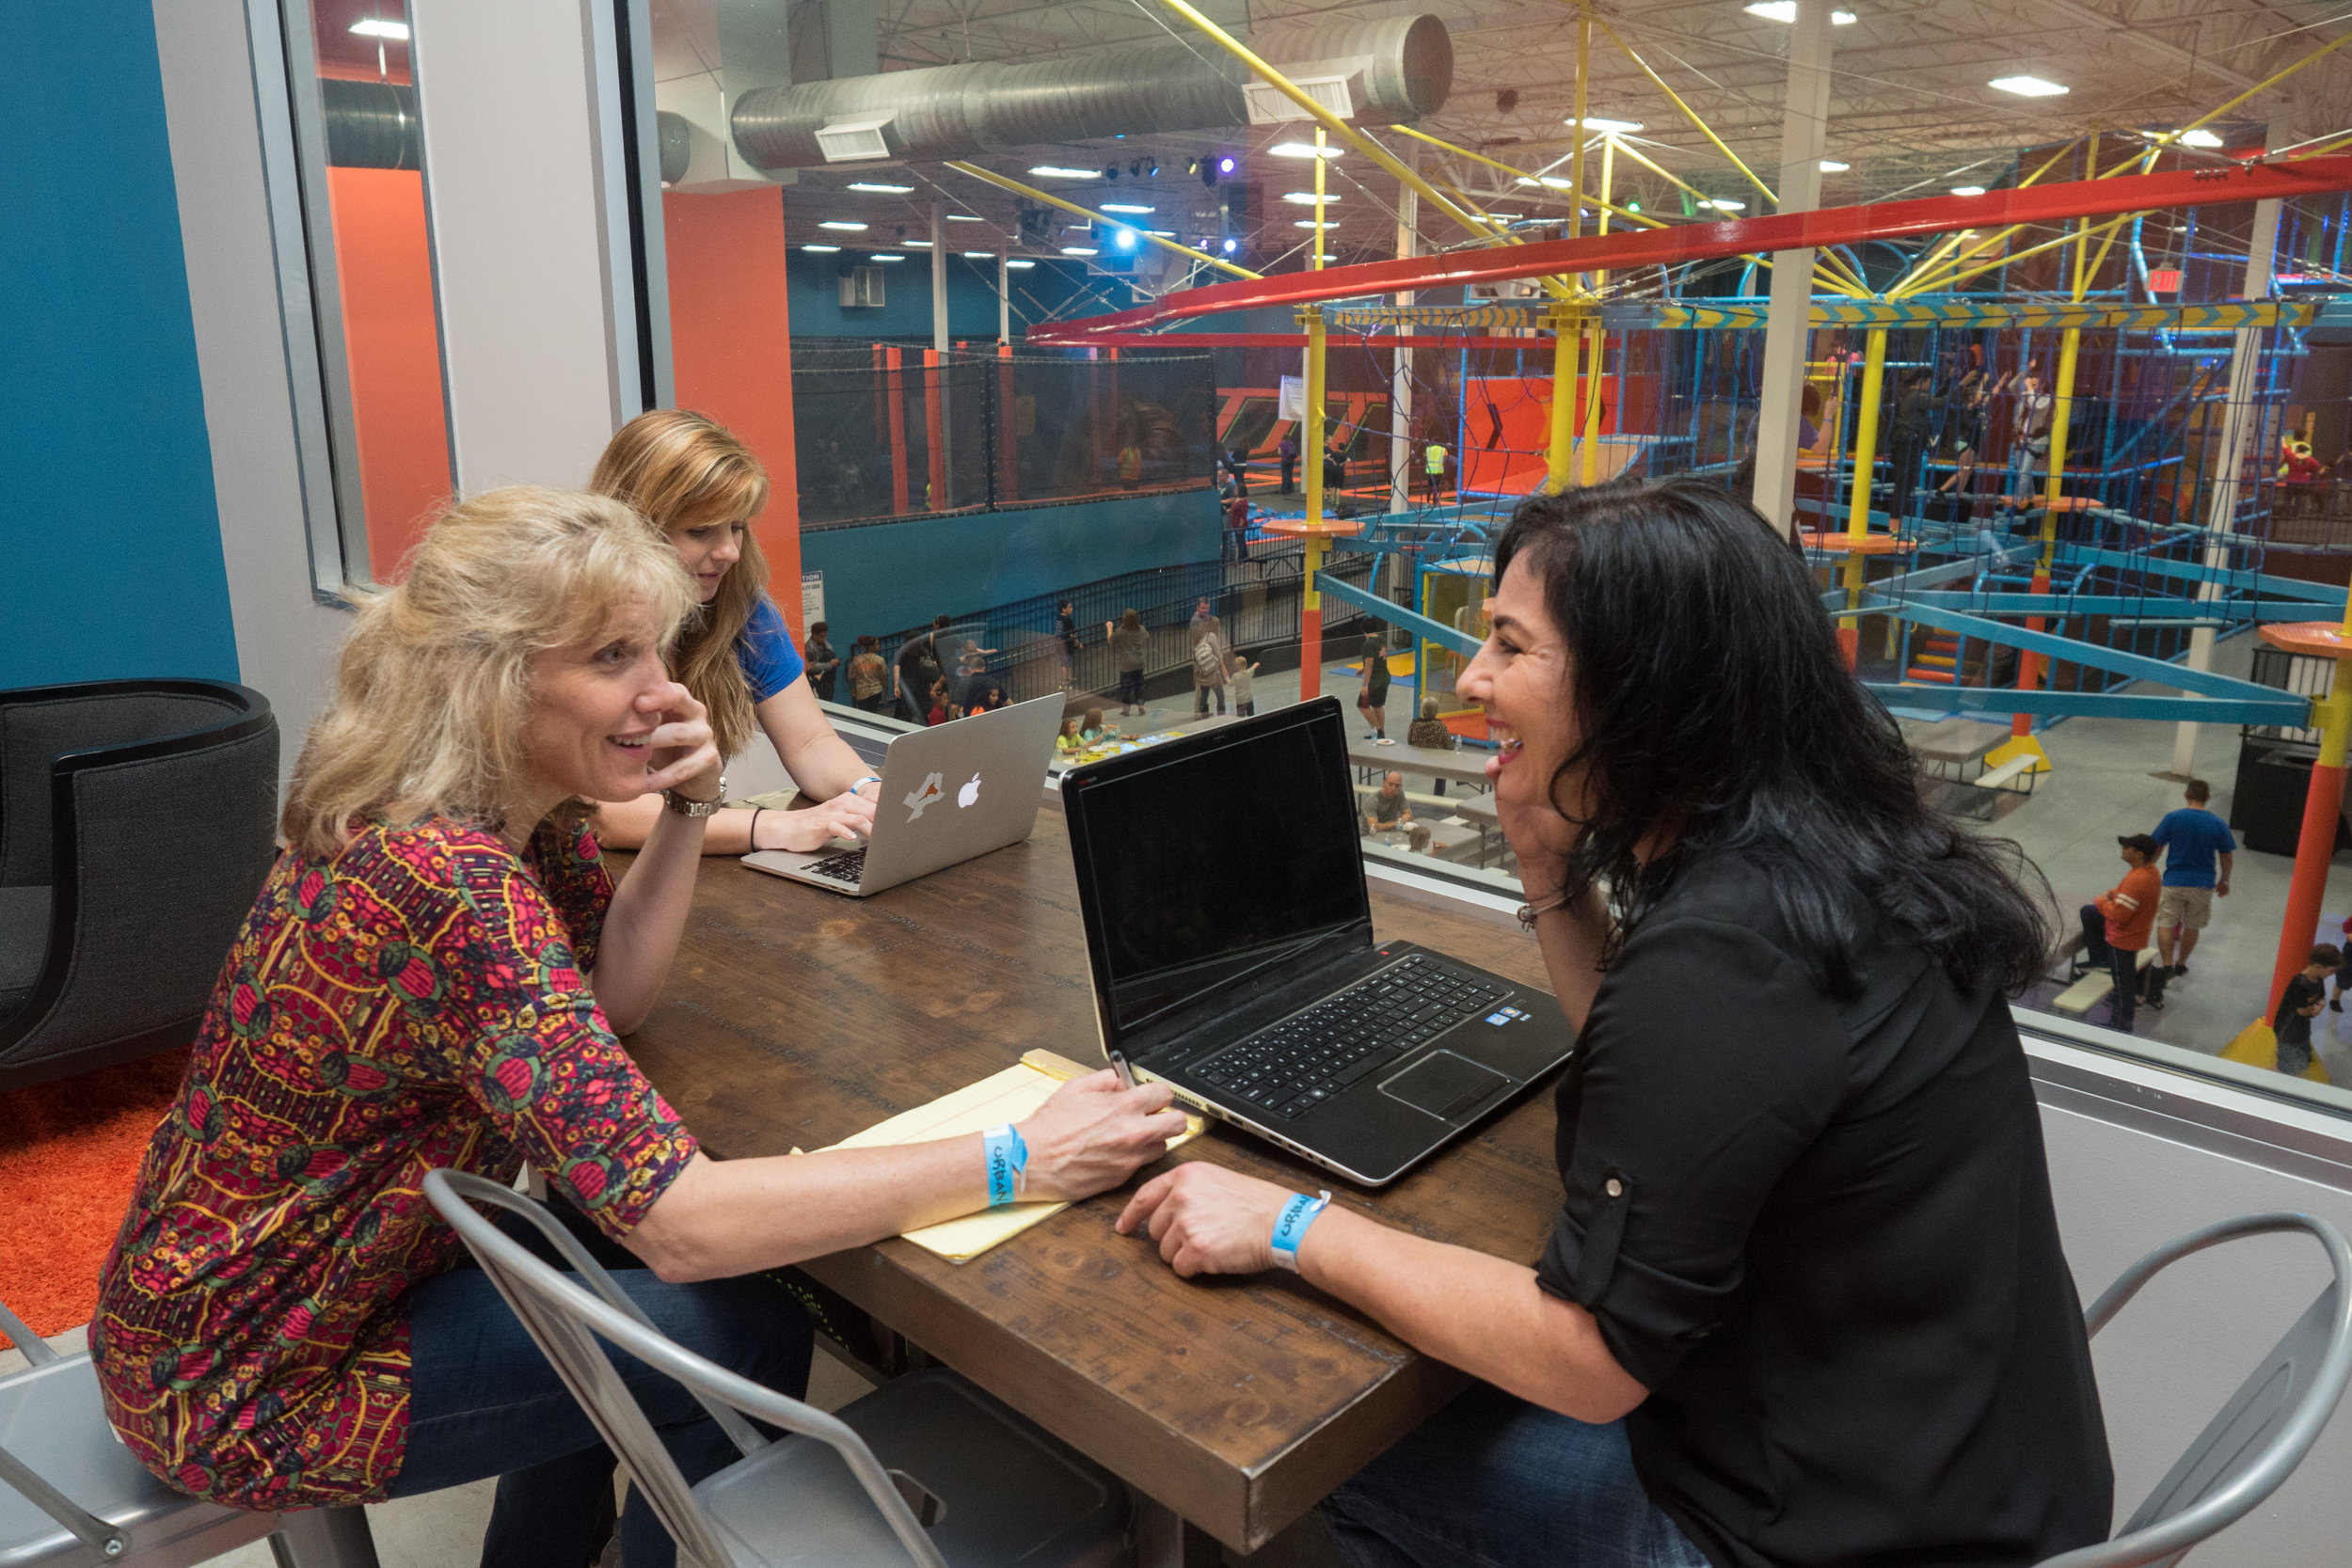 Moms have business meetings while kids play at Urban Air in Sugar Land, Tx